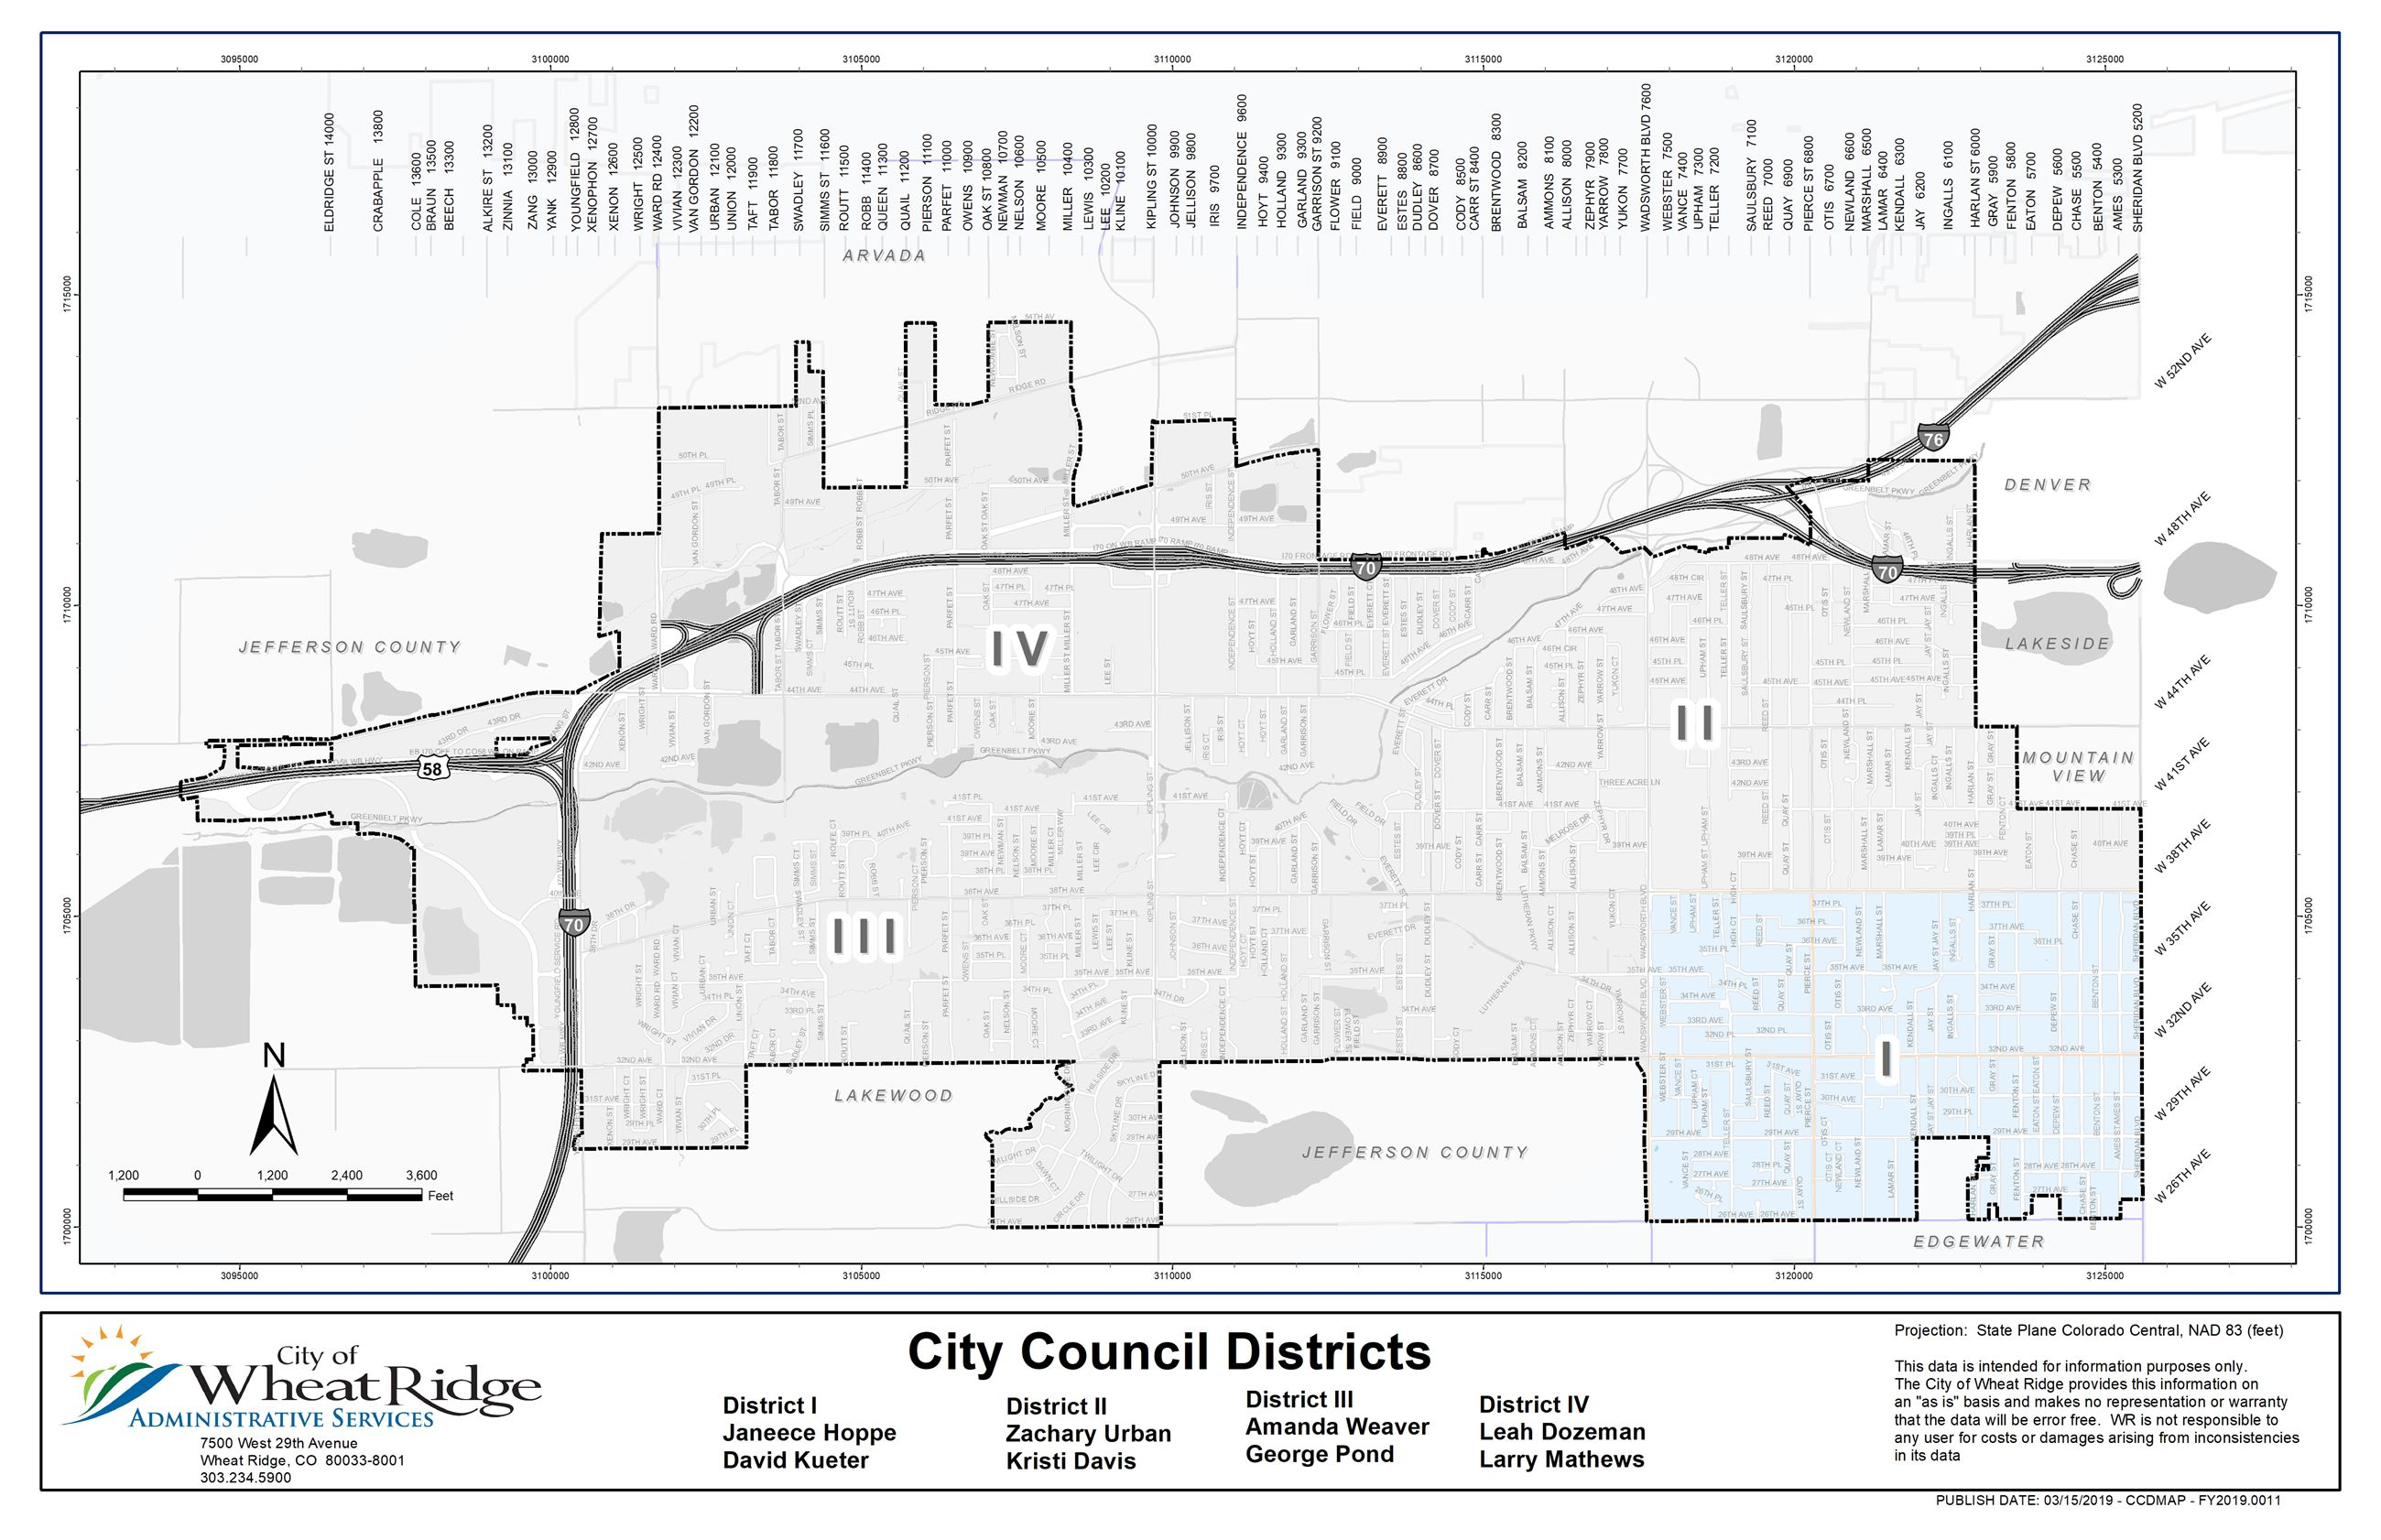 Wheat Ridge District 1